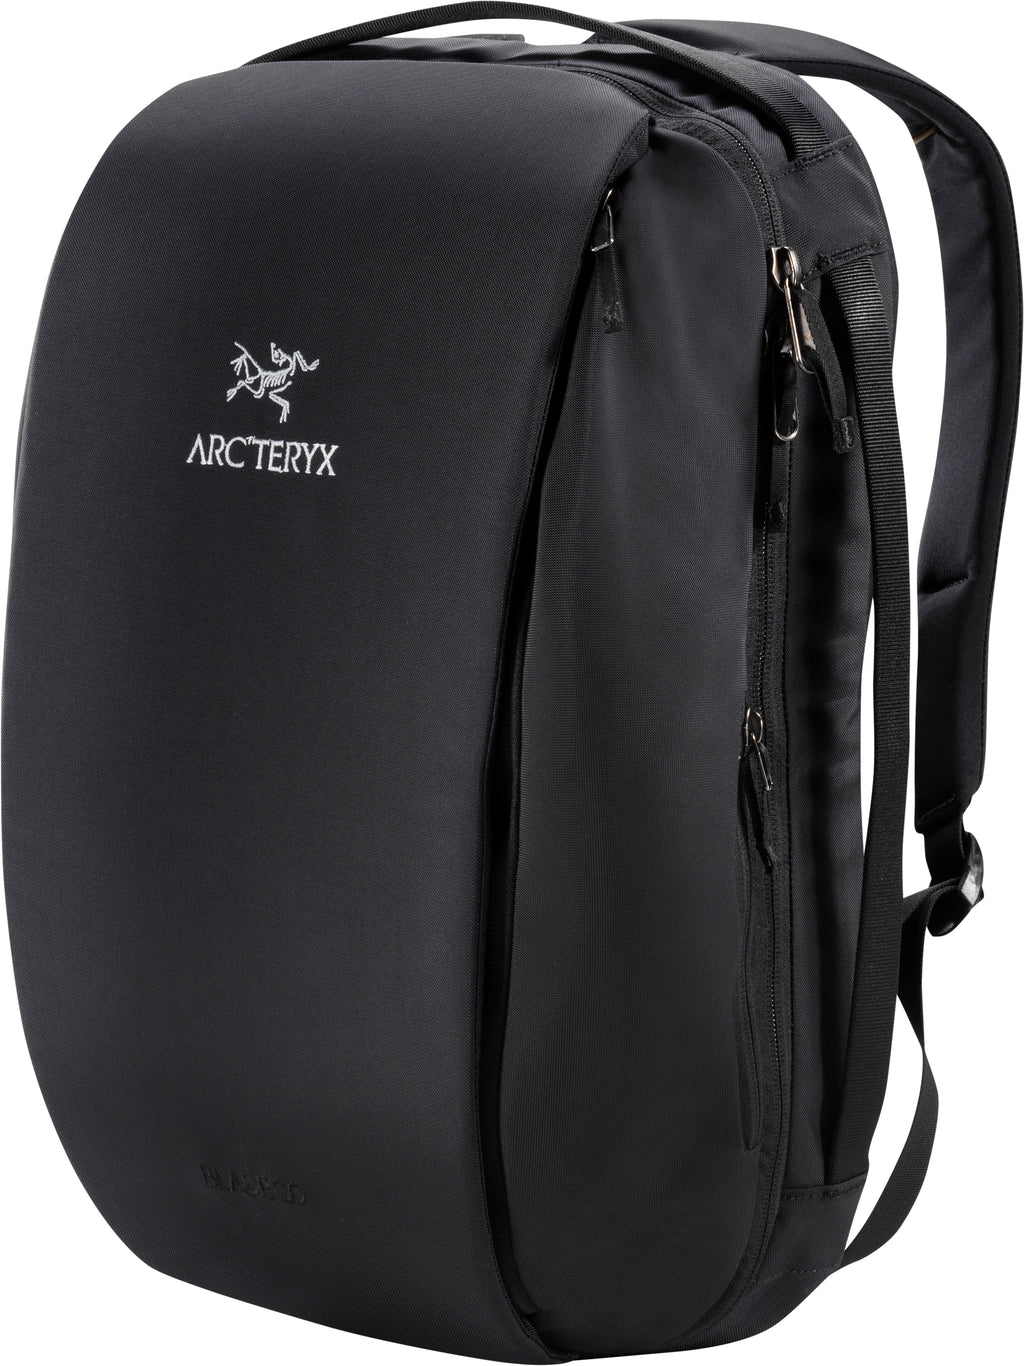 Arc'teryx Blade 20 promotional Backpack